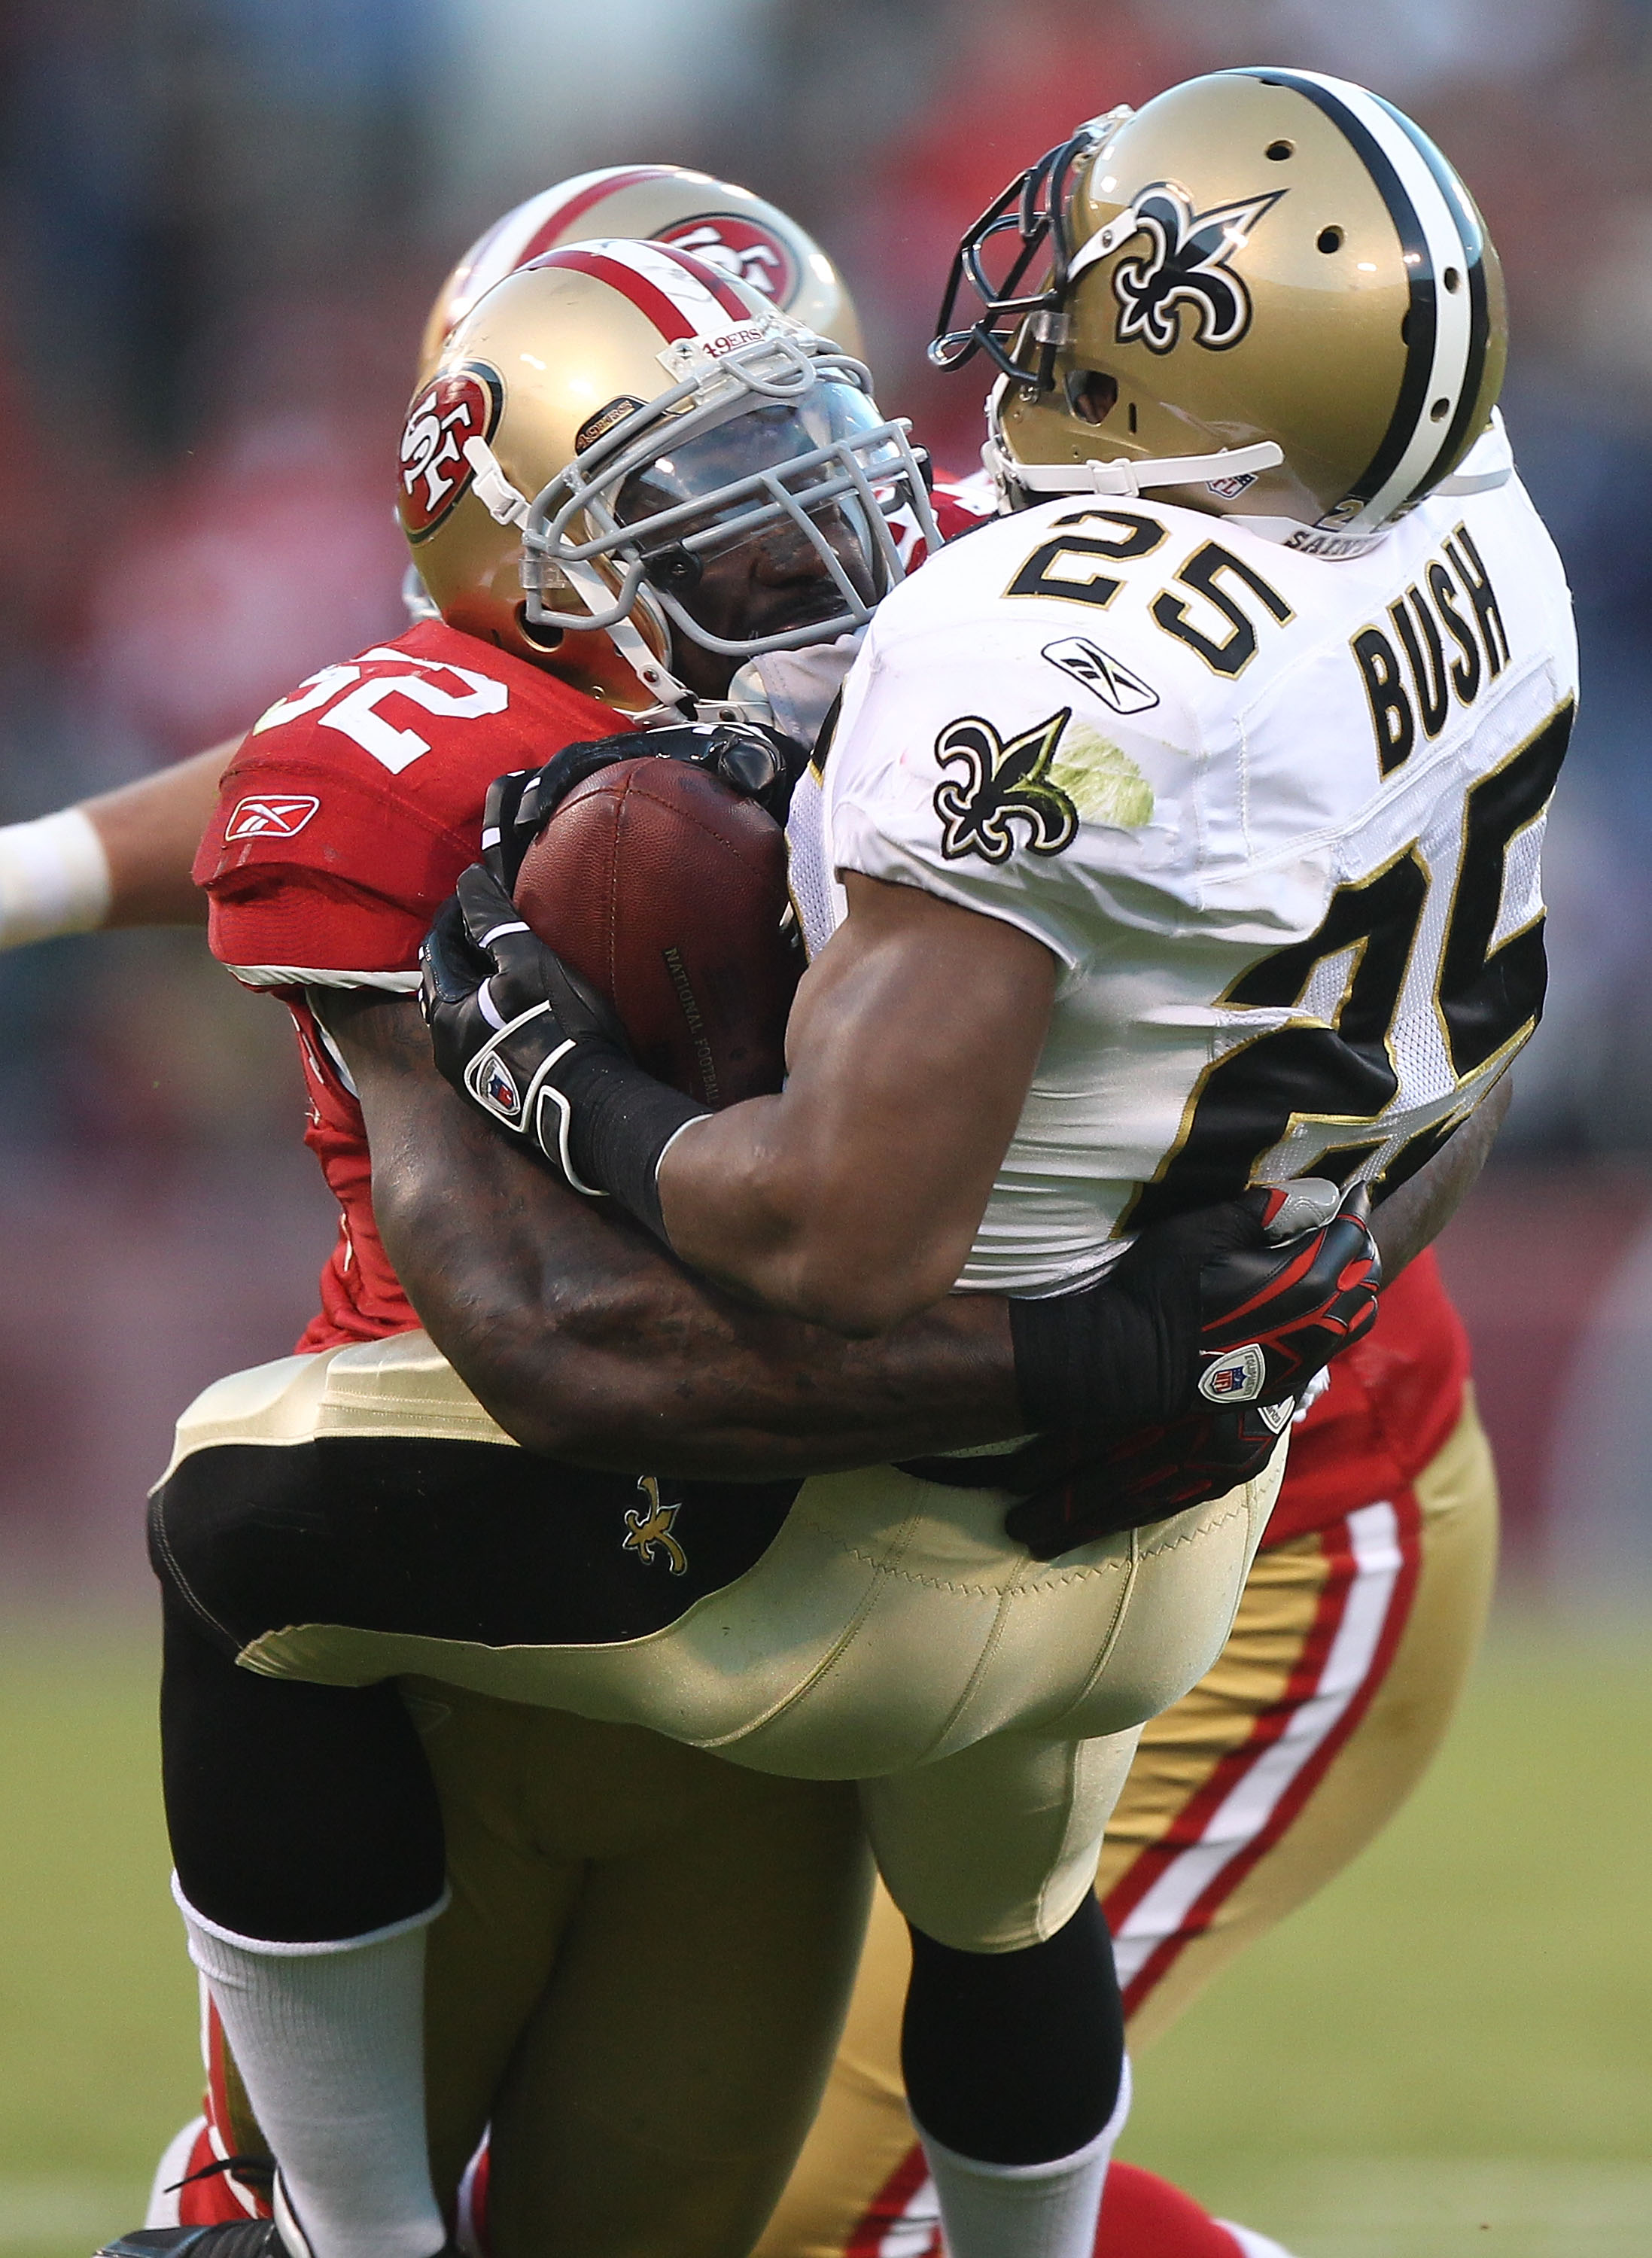 SAN FRANCISCO - SEPTEMBER 20:  Patrick Willis #52 of the San Francisco 49er tackles Reggie Bush #25 of the New Orleans Saints during an NFL game at Candlestick Park on September 20, 2010 in San Francisco, California.(Photo by Jed Jacobsohn/Getty Images)